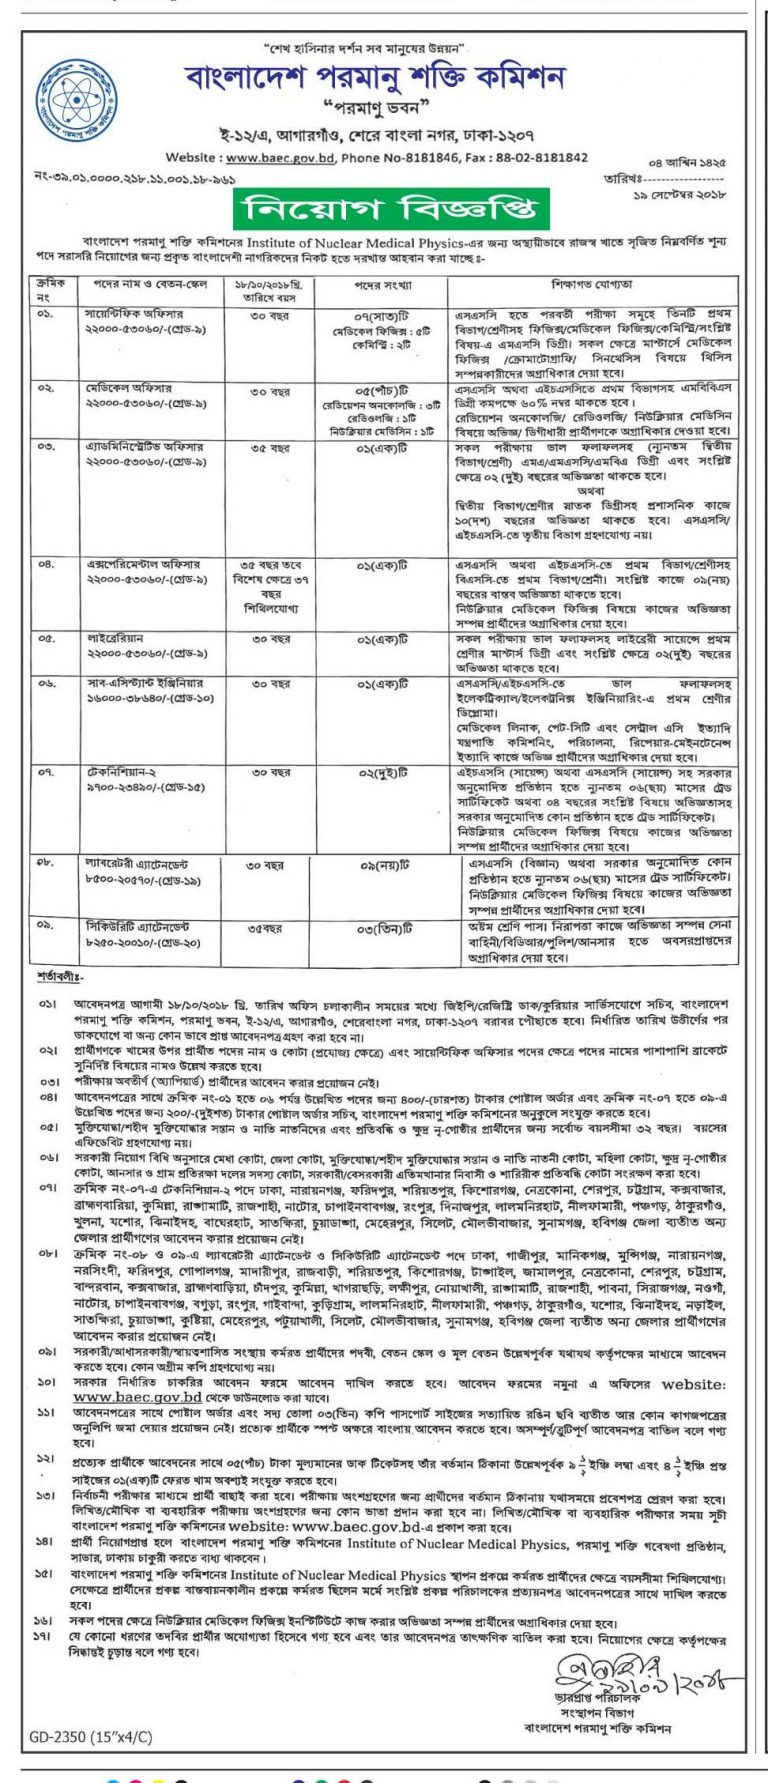 Bangladesh Atomic Energy Commission BAEC Job Circular  2018